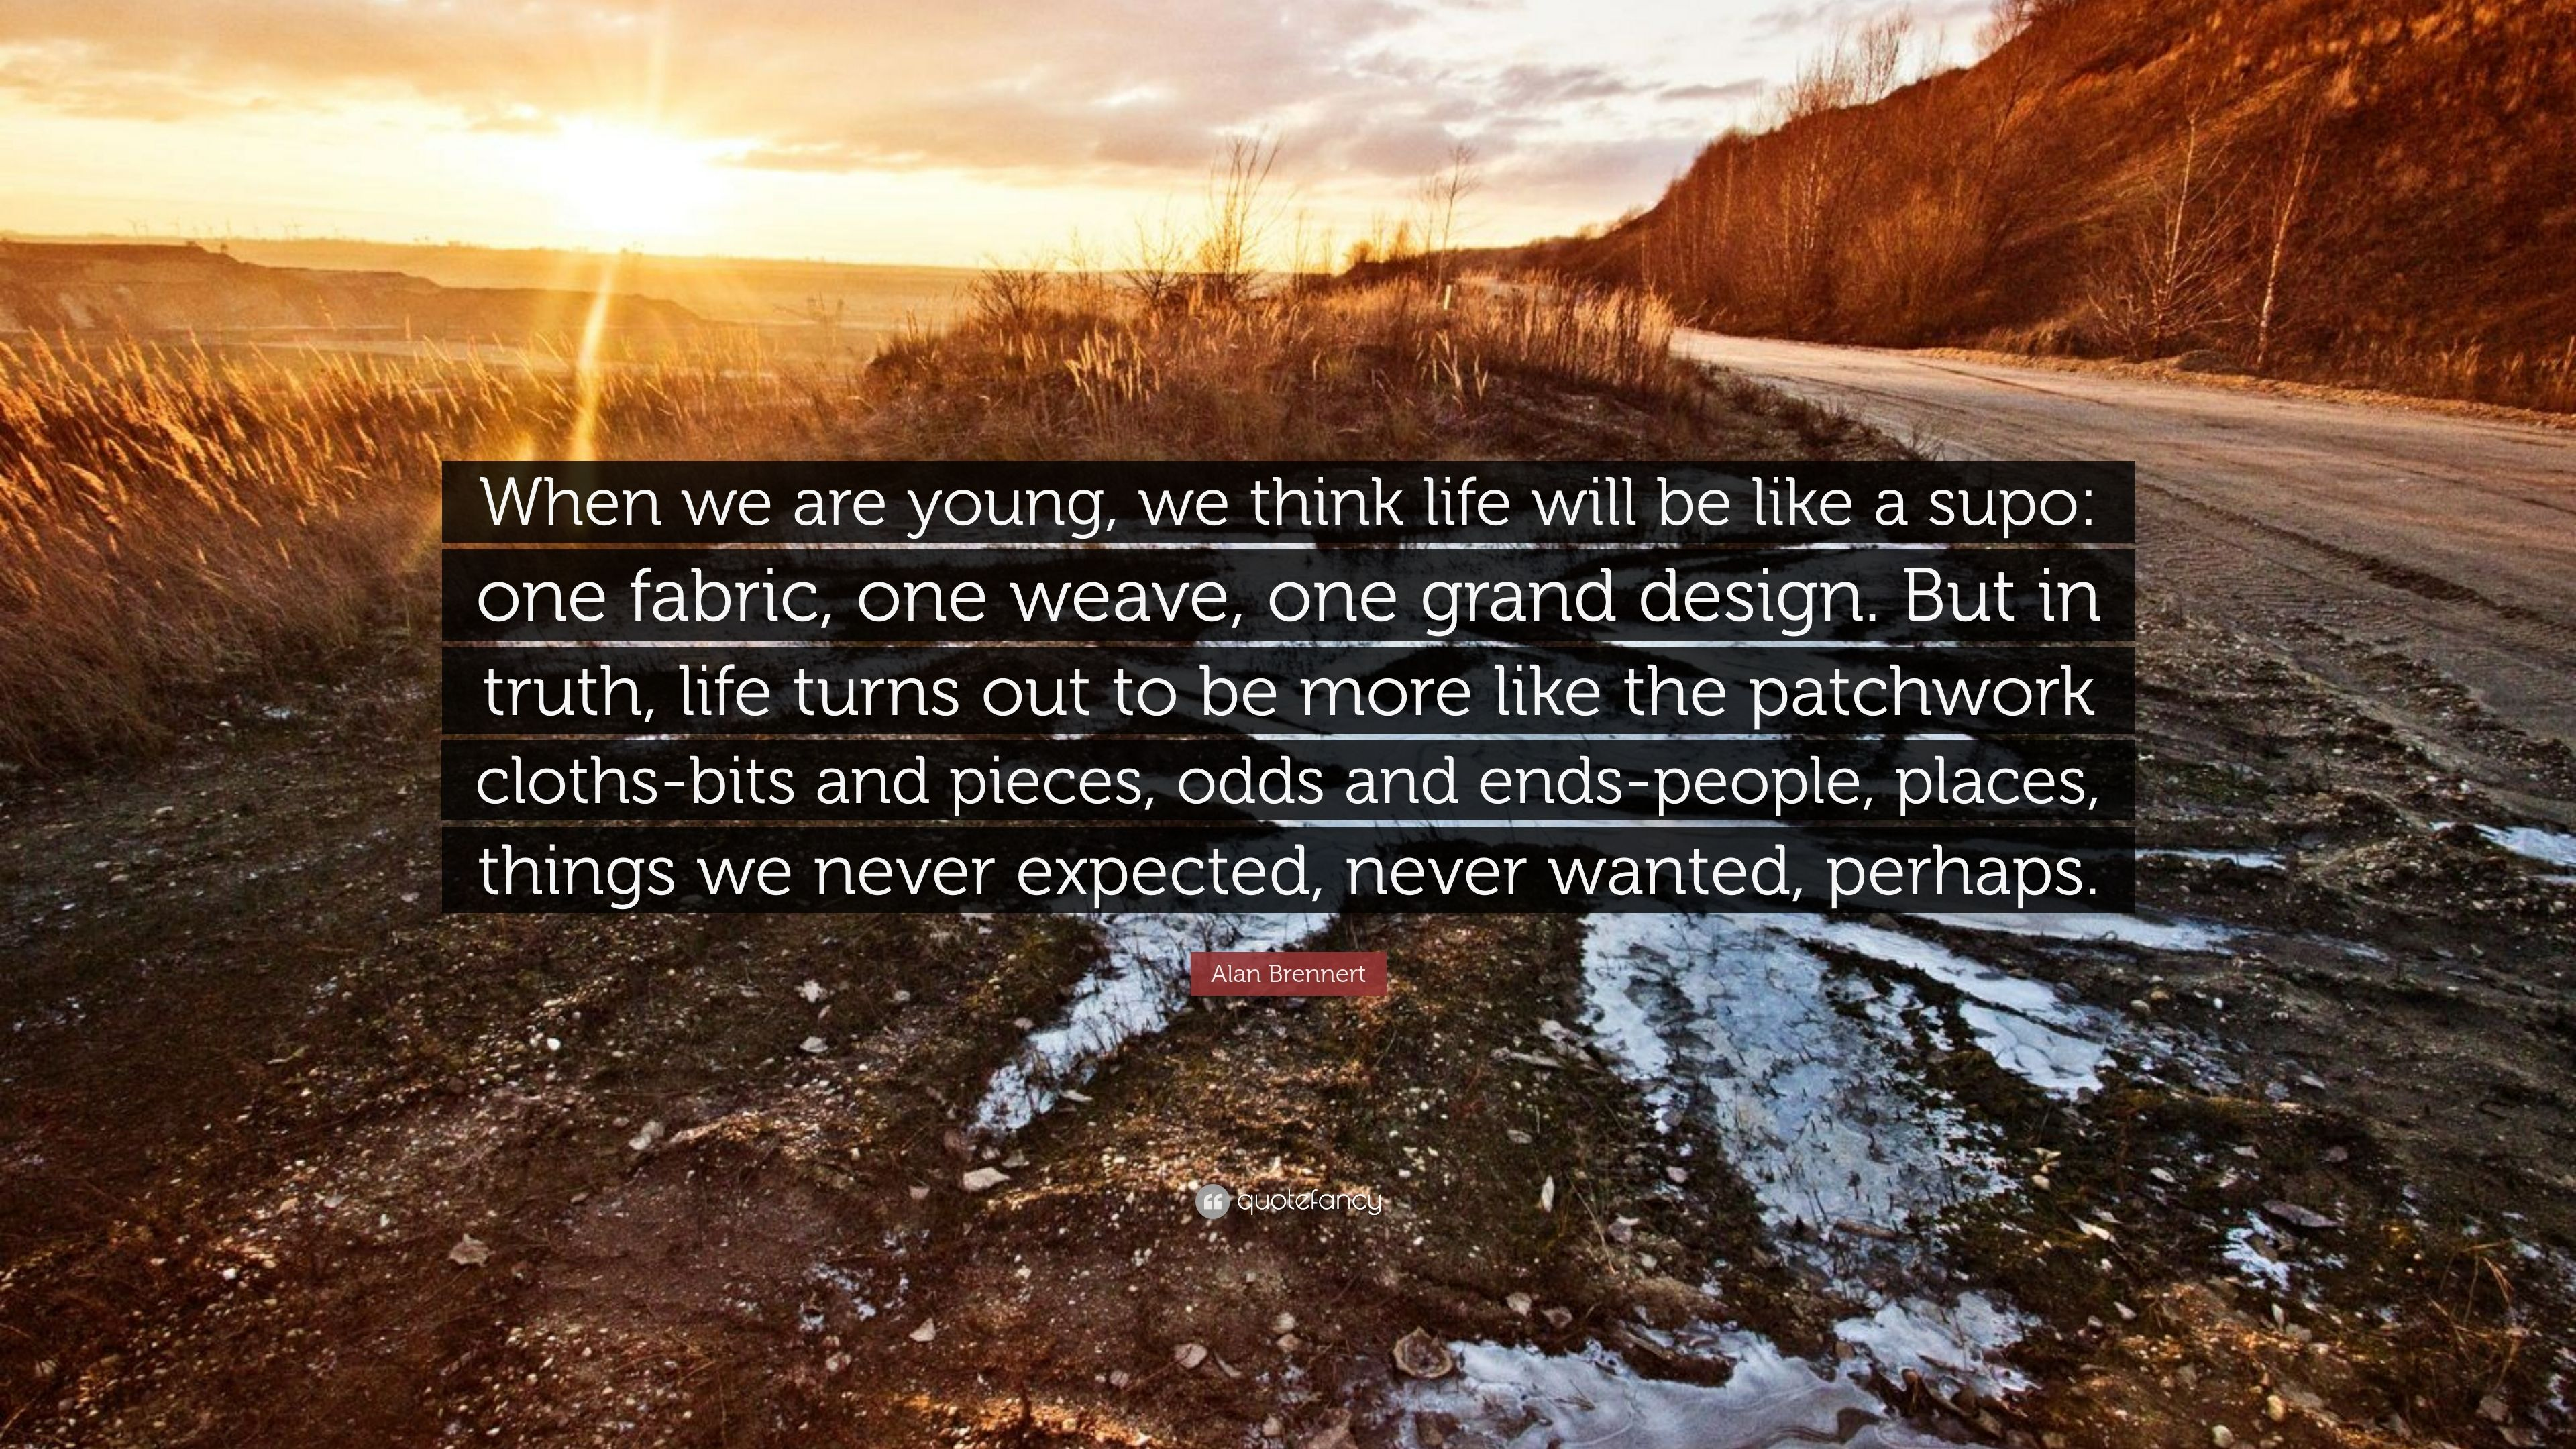 Alan Brennert Quote: U201cWhen We Are Young, We Think Life Will Be Like